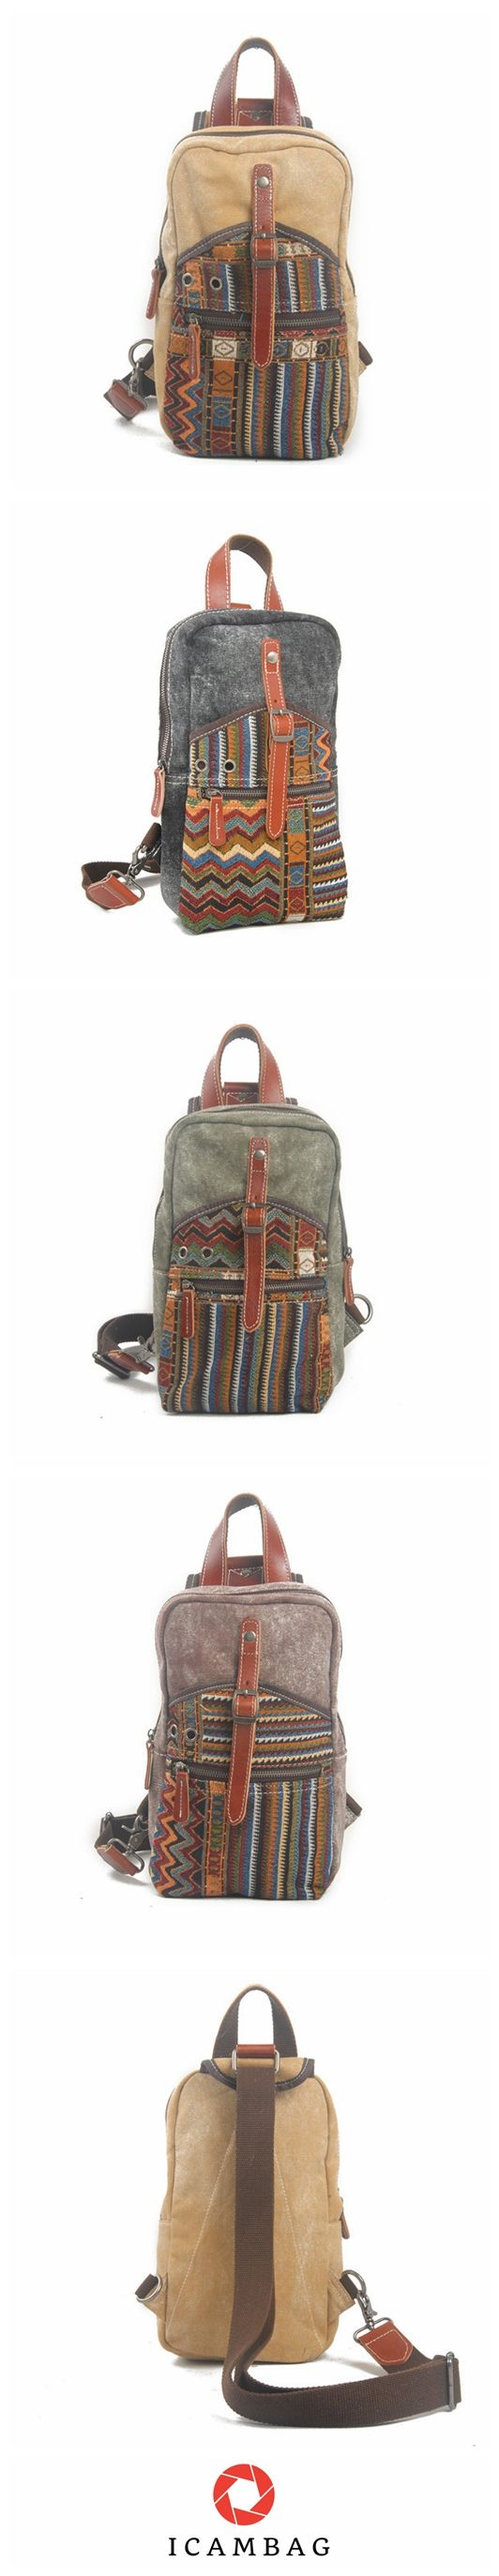 Striped Canvas Single Shoulder Bag For Men's And Women's 1007